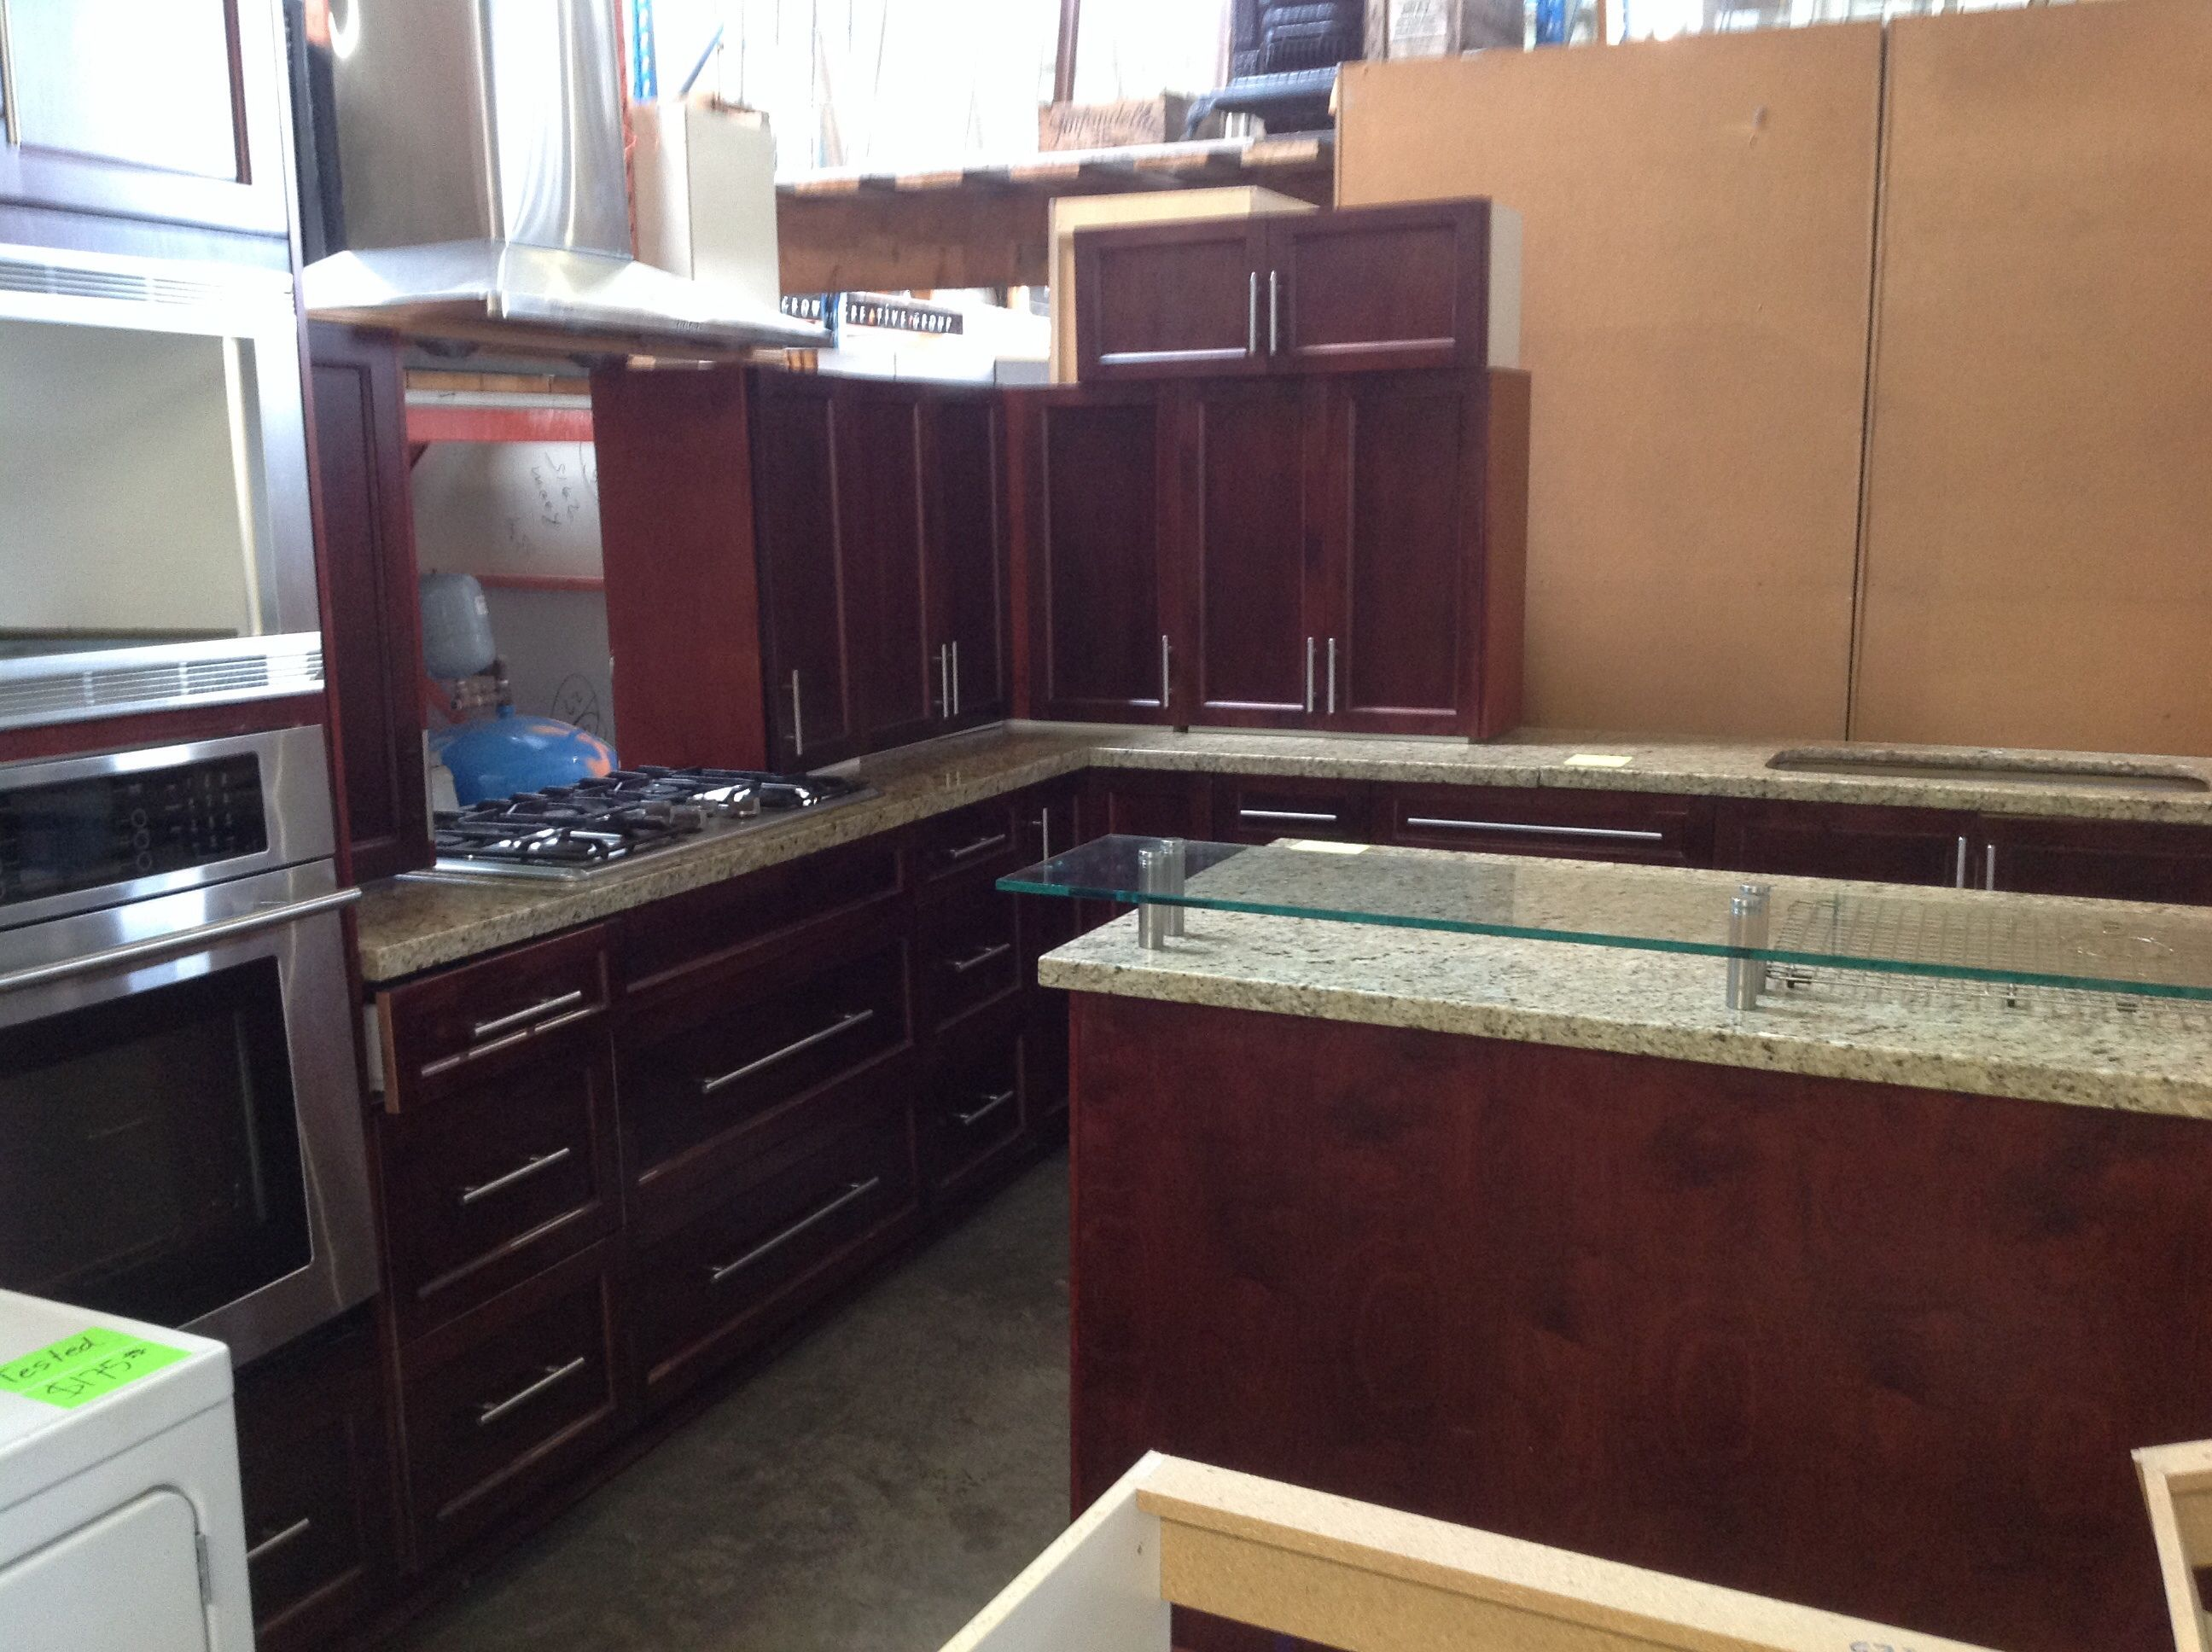 Used Kitchen Set Chilliwack New And Used Building Materials Inc Kitchen Sets Kitchen Cabinets Window Handles